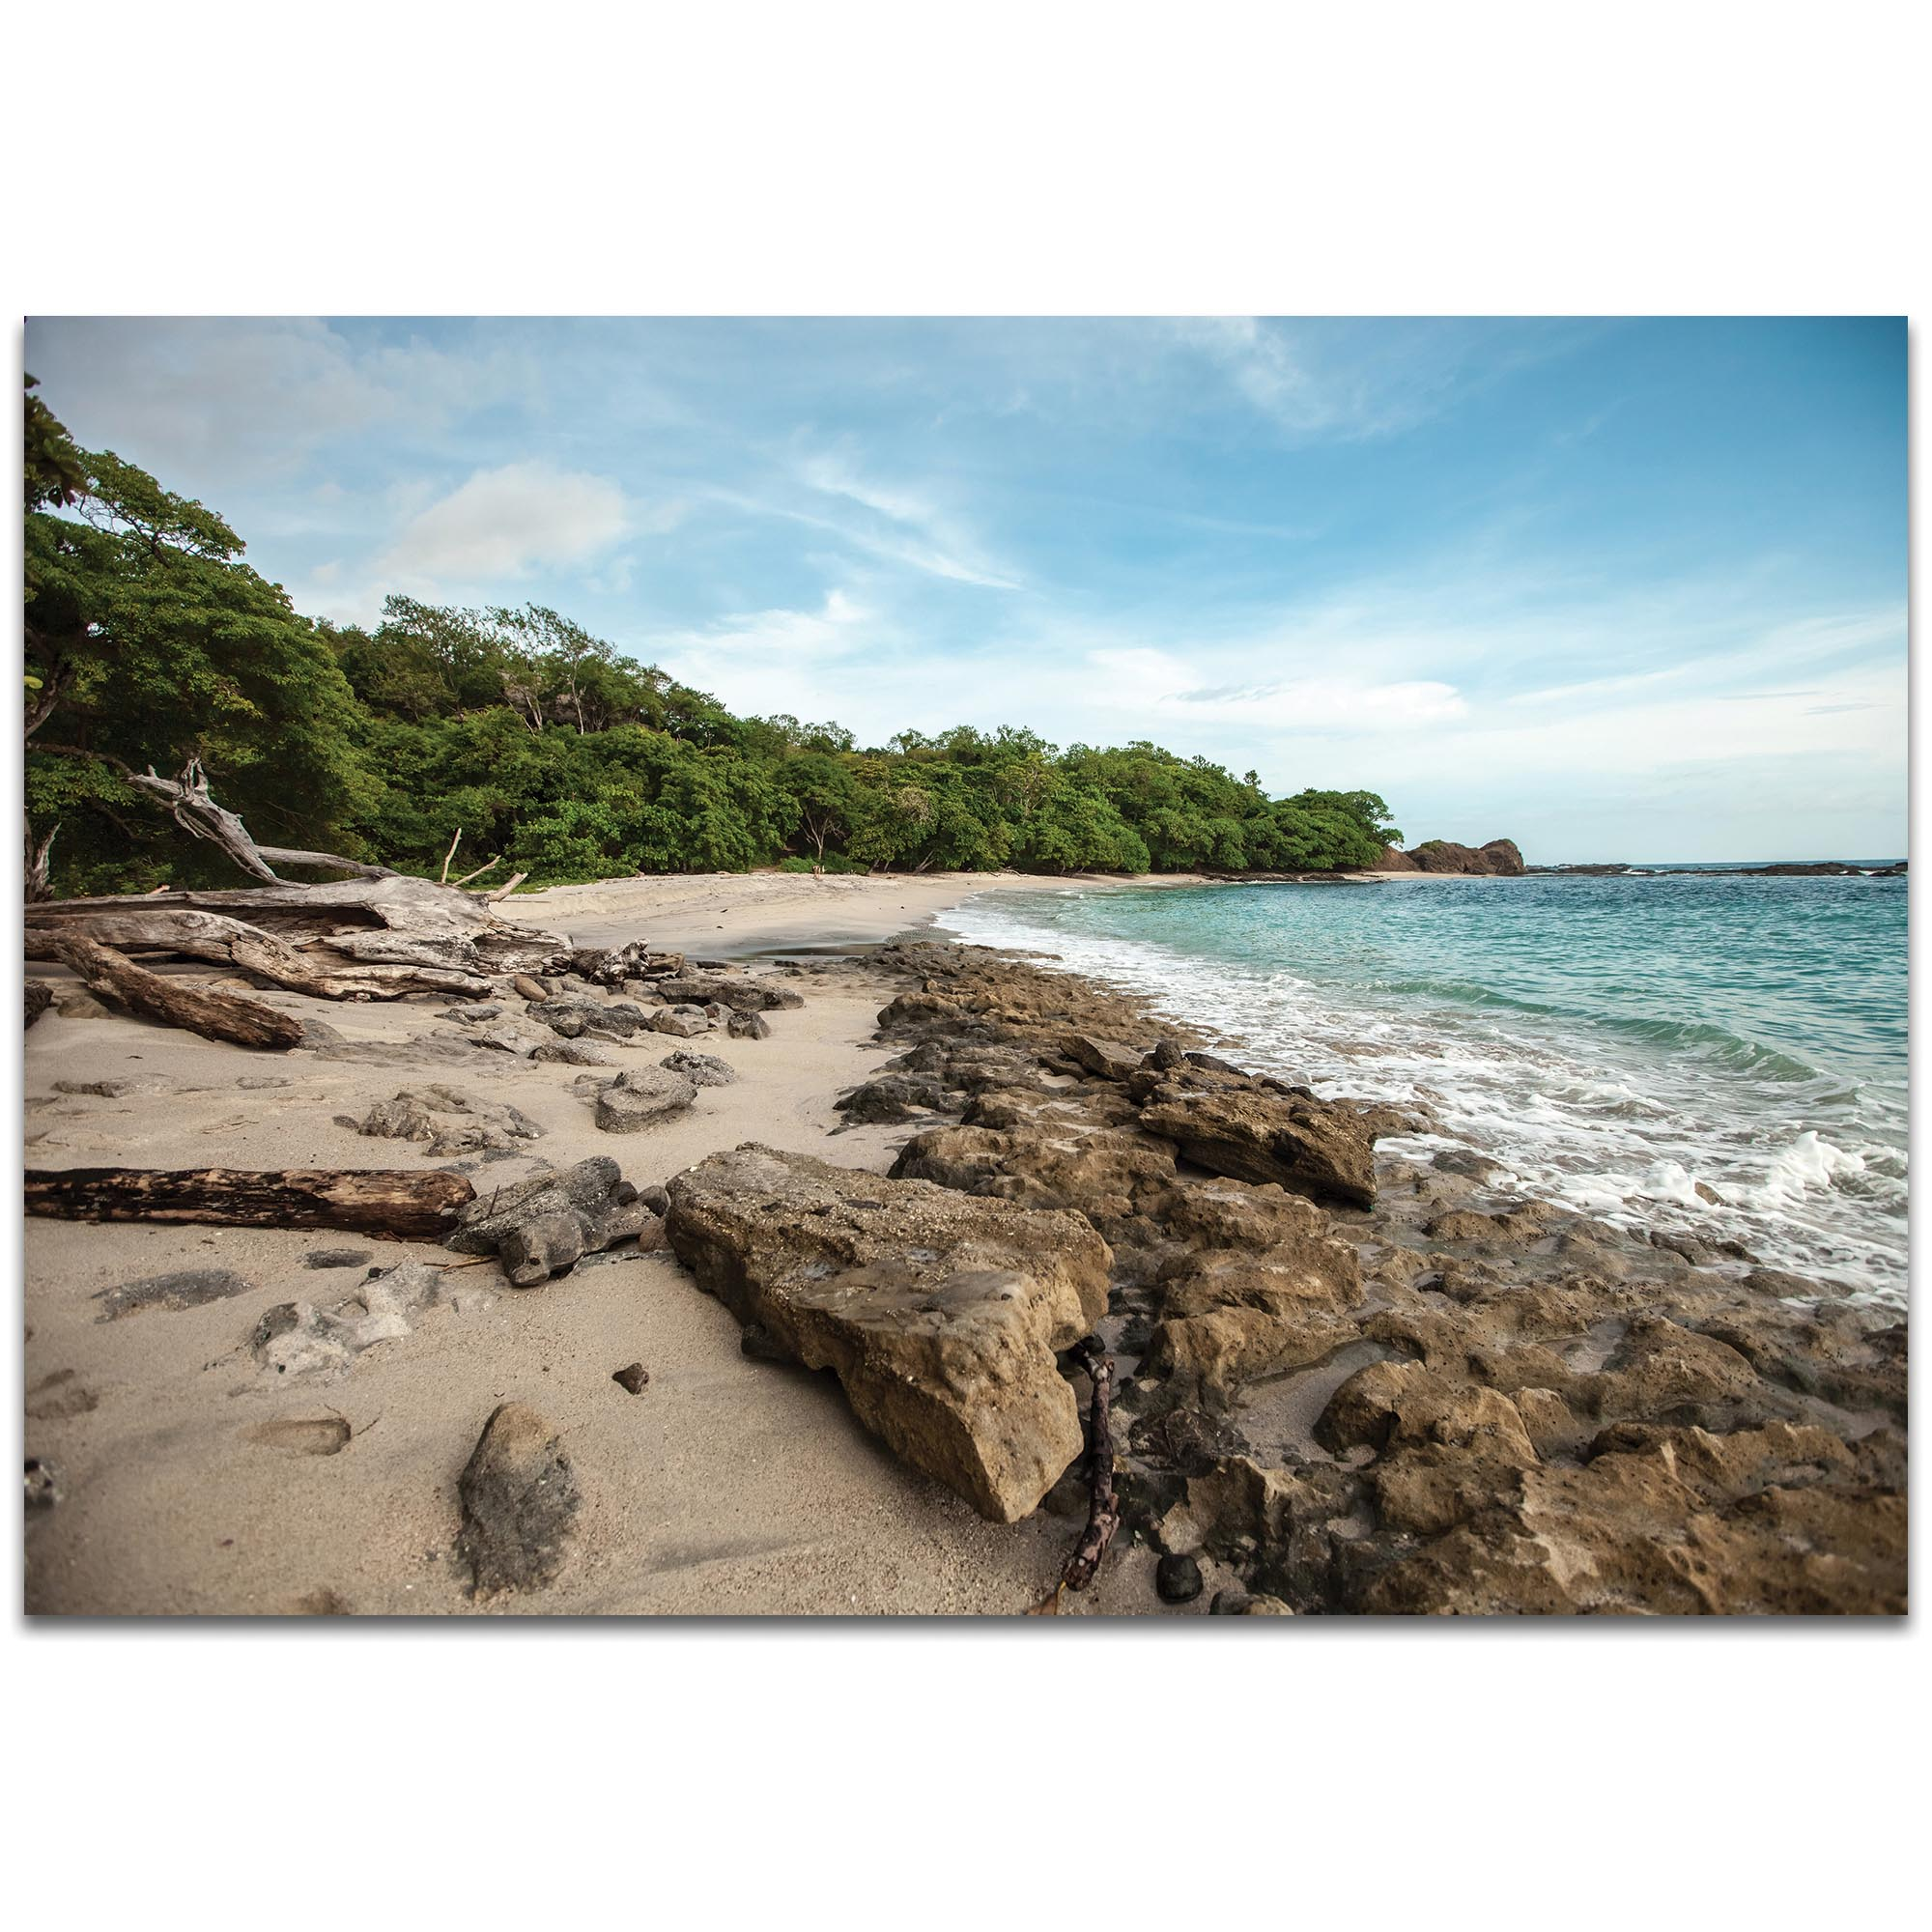 Coastal Wall Art 'Tropical Jungle' - Beach Decor on Metal or Plexiglass